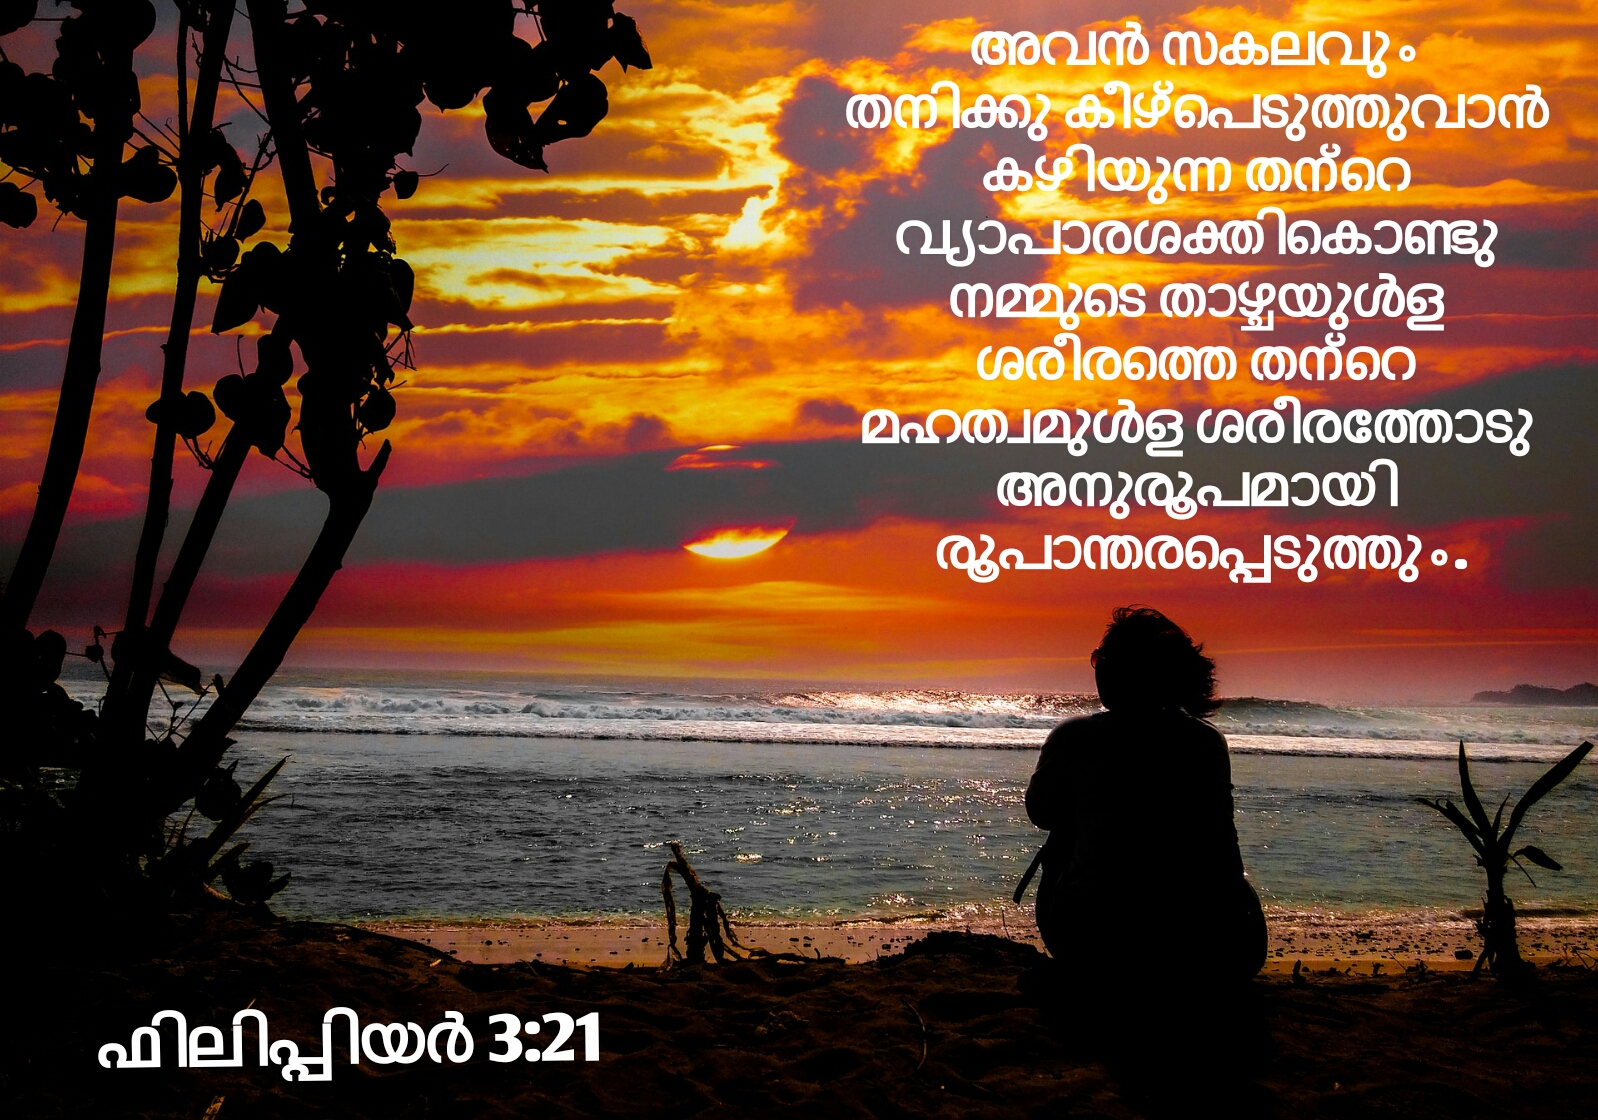 Malayalam Christian Wallpapers